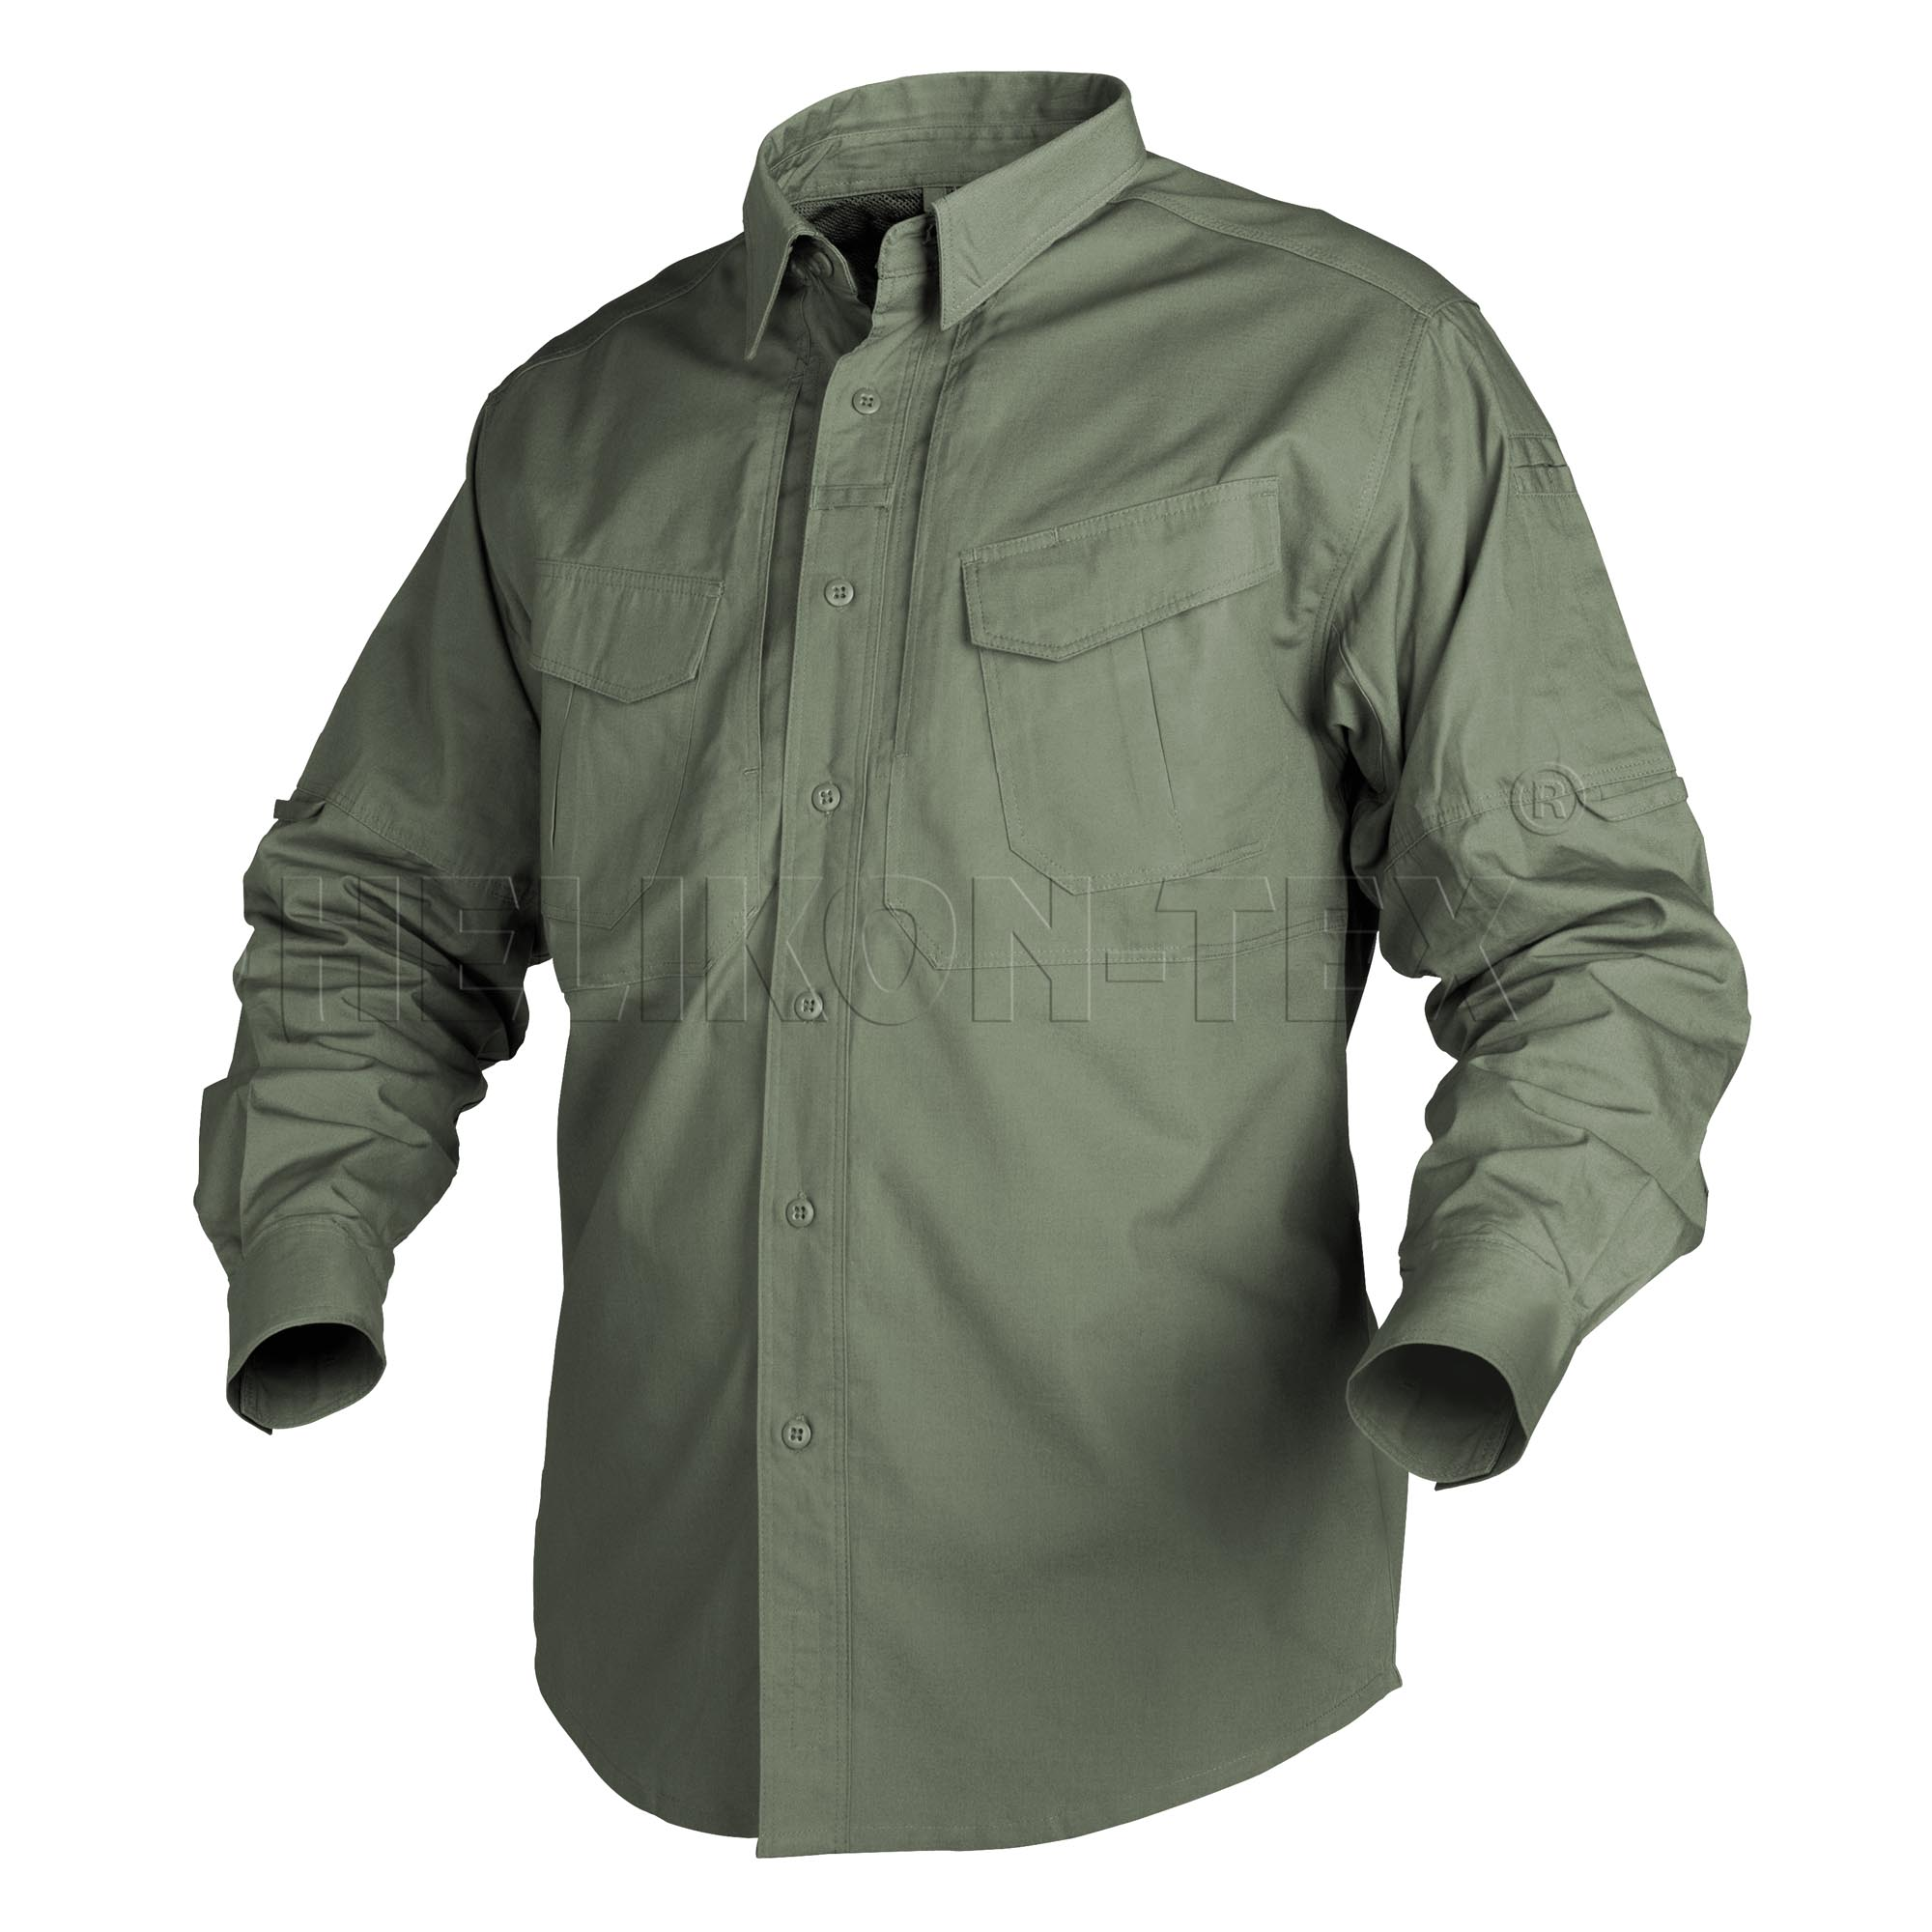 Рубашка Helikon-Tex Defender с длинным рукавом olive green